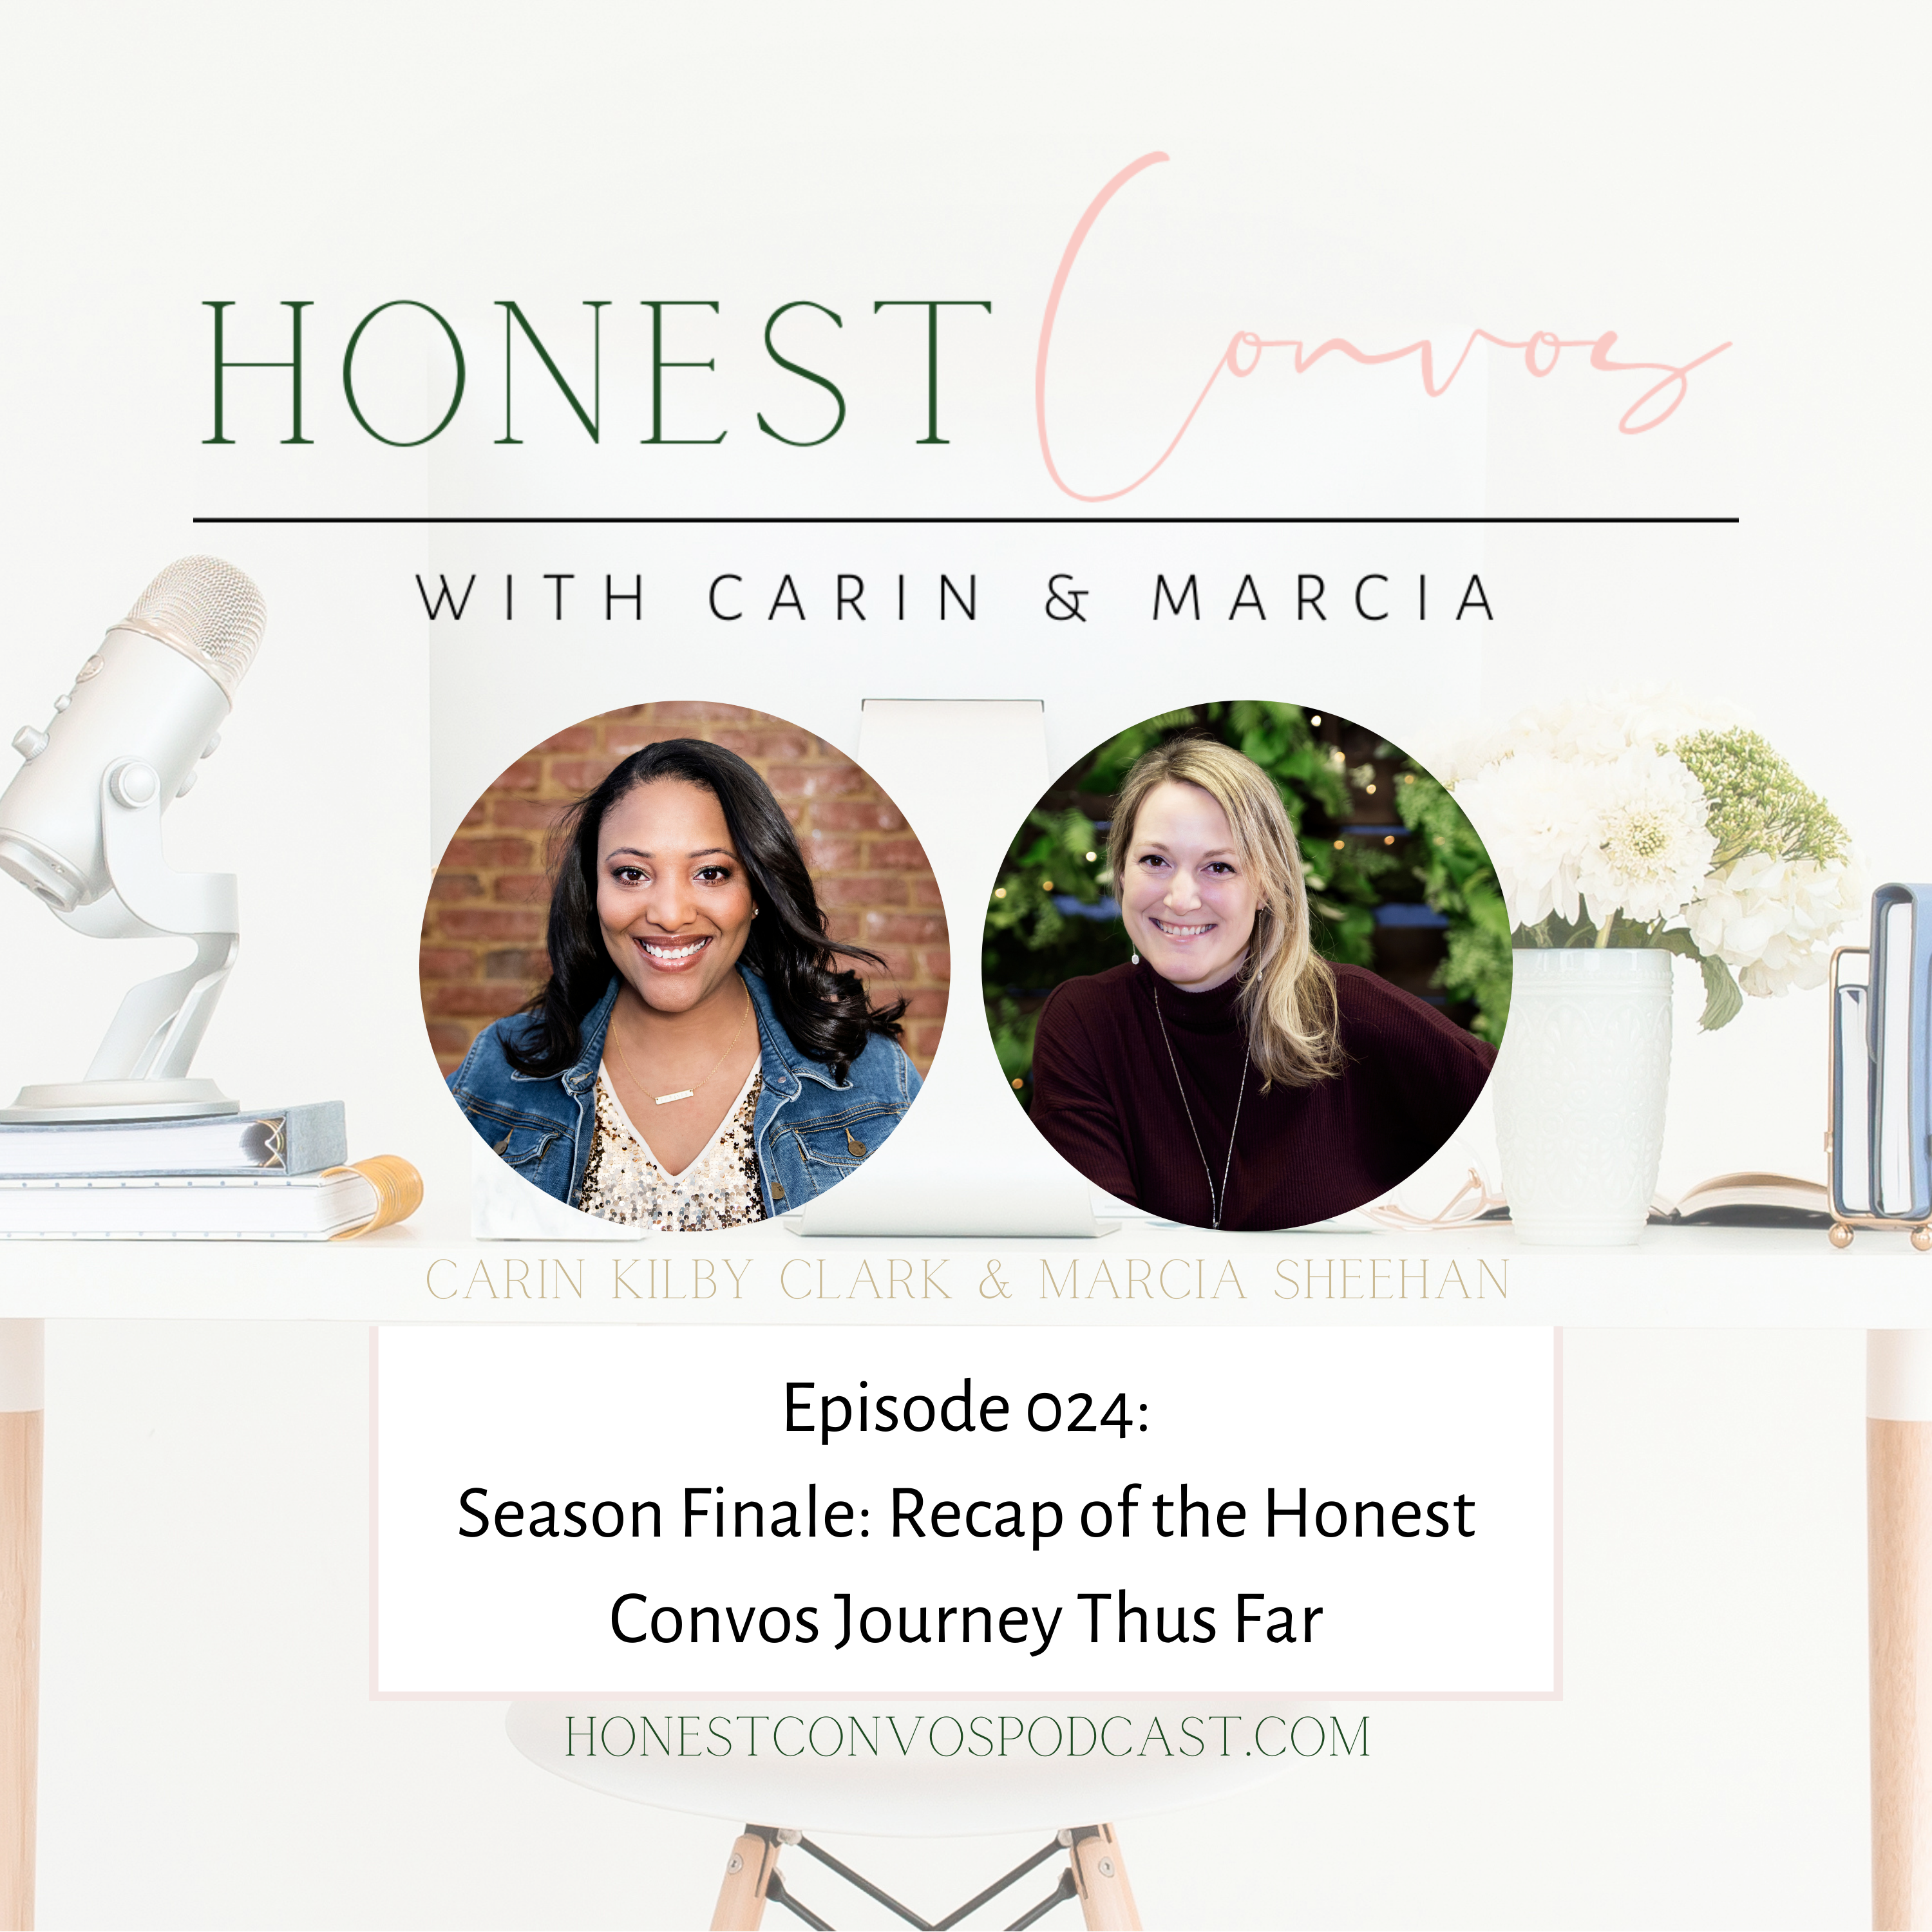 Honest Convos with Carin and Marcia - Recap of the Honest Convos Journey Thus Far